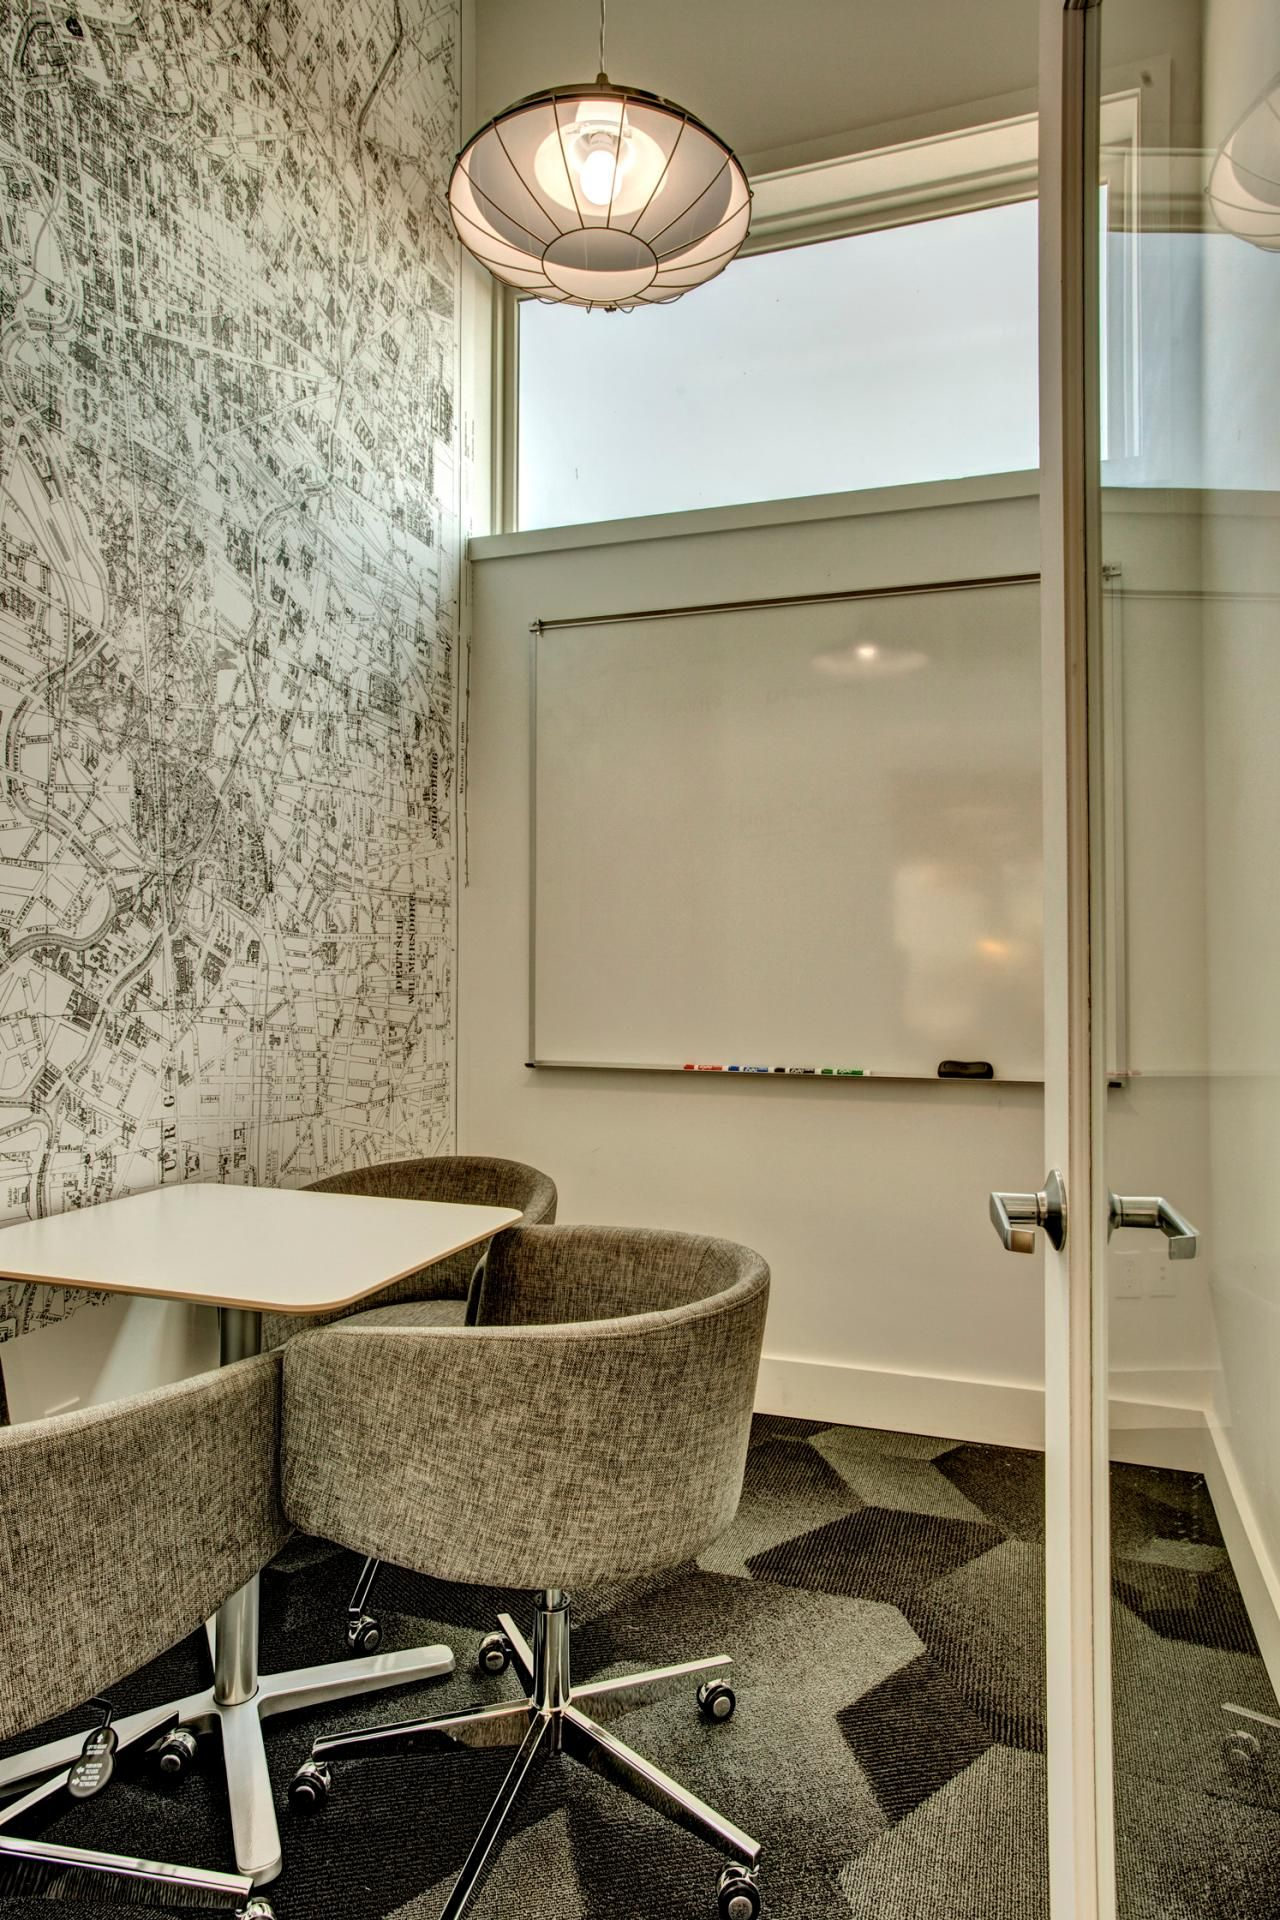 Conference Room Design Ideas: Inspiring Office Conference Room Reveal Their Playful